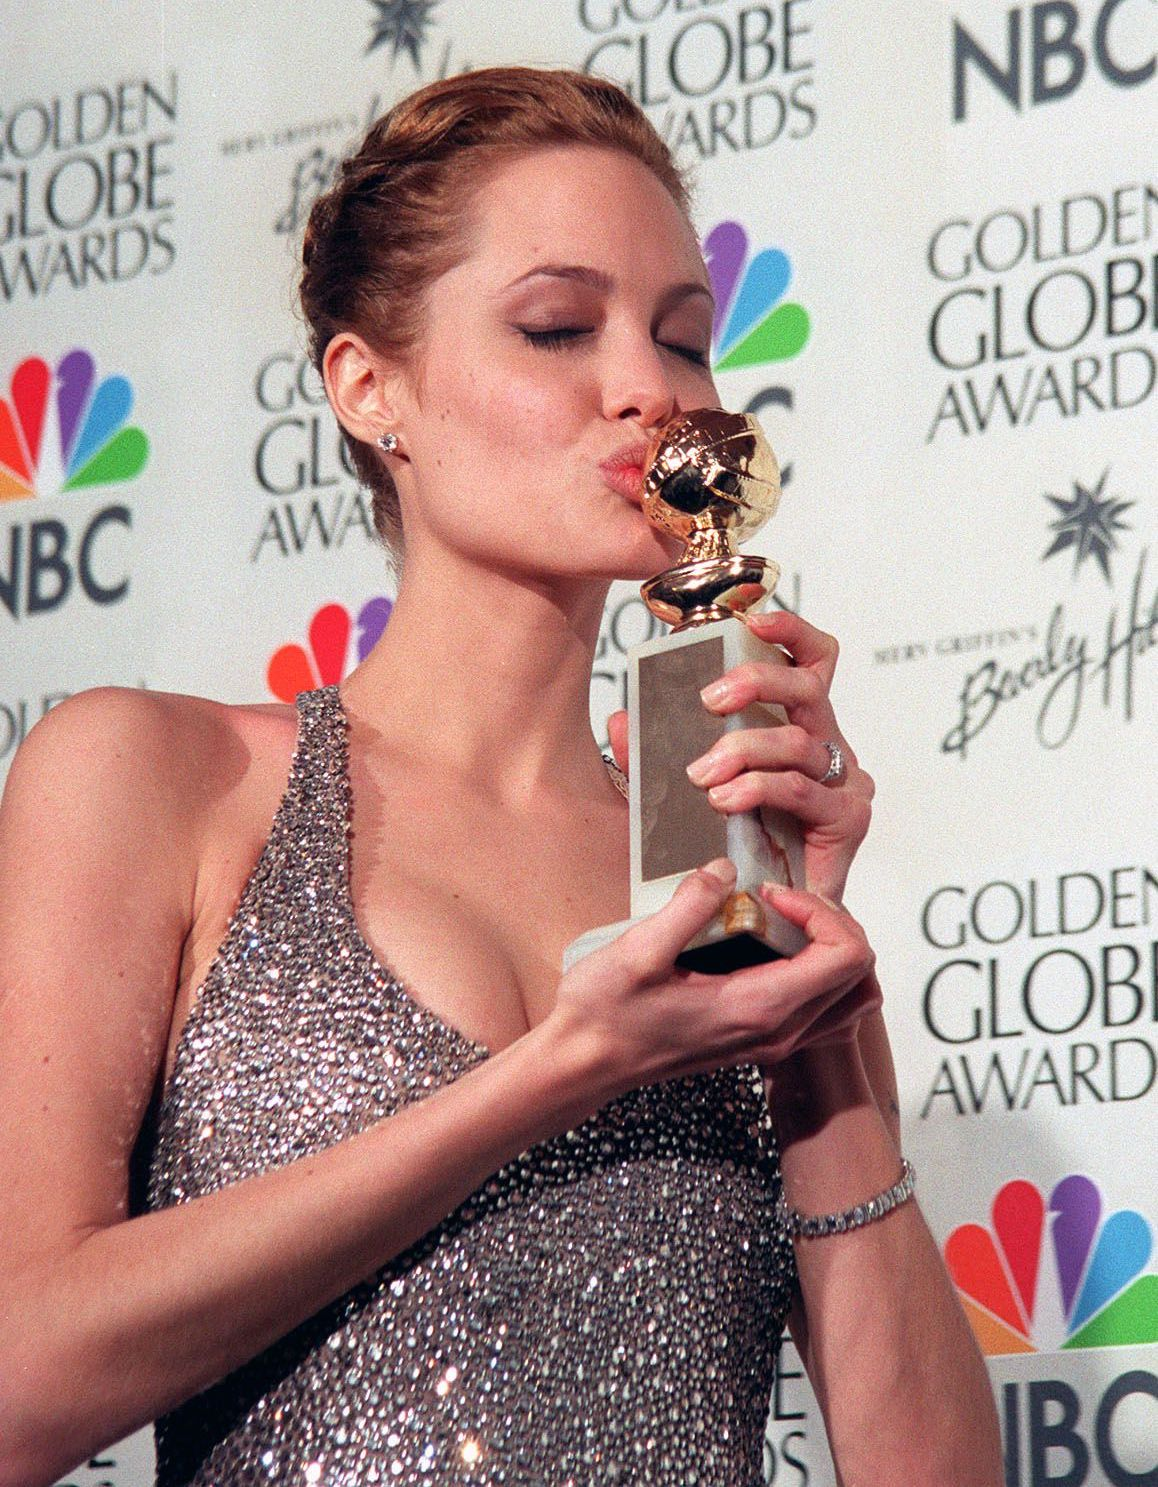 Angelina Jolie Kissing the Golden Globe Award She Won for Her Role in 'Gia'